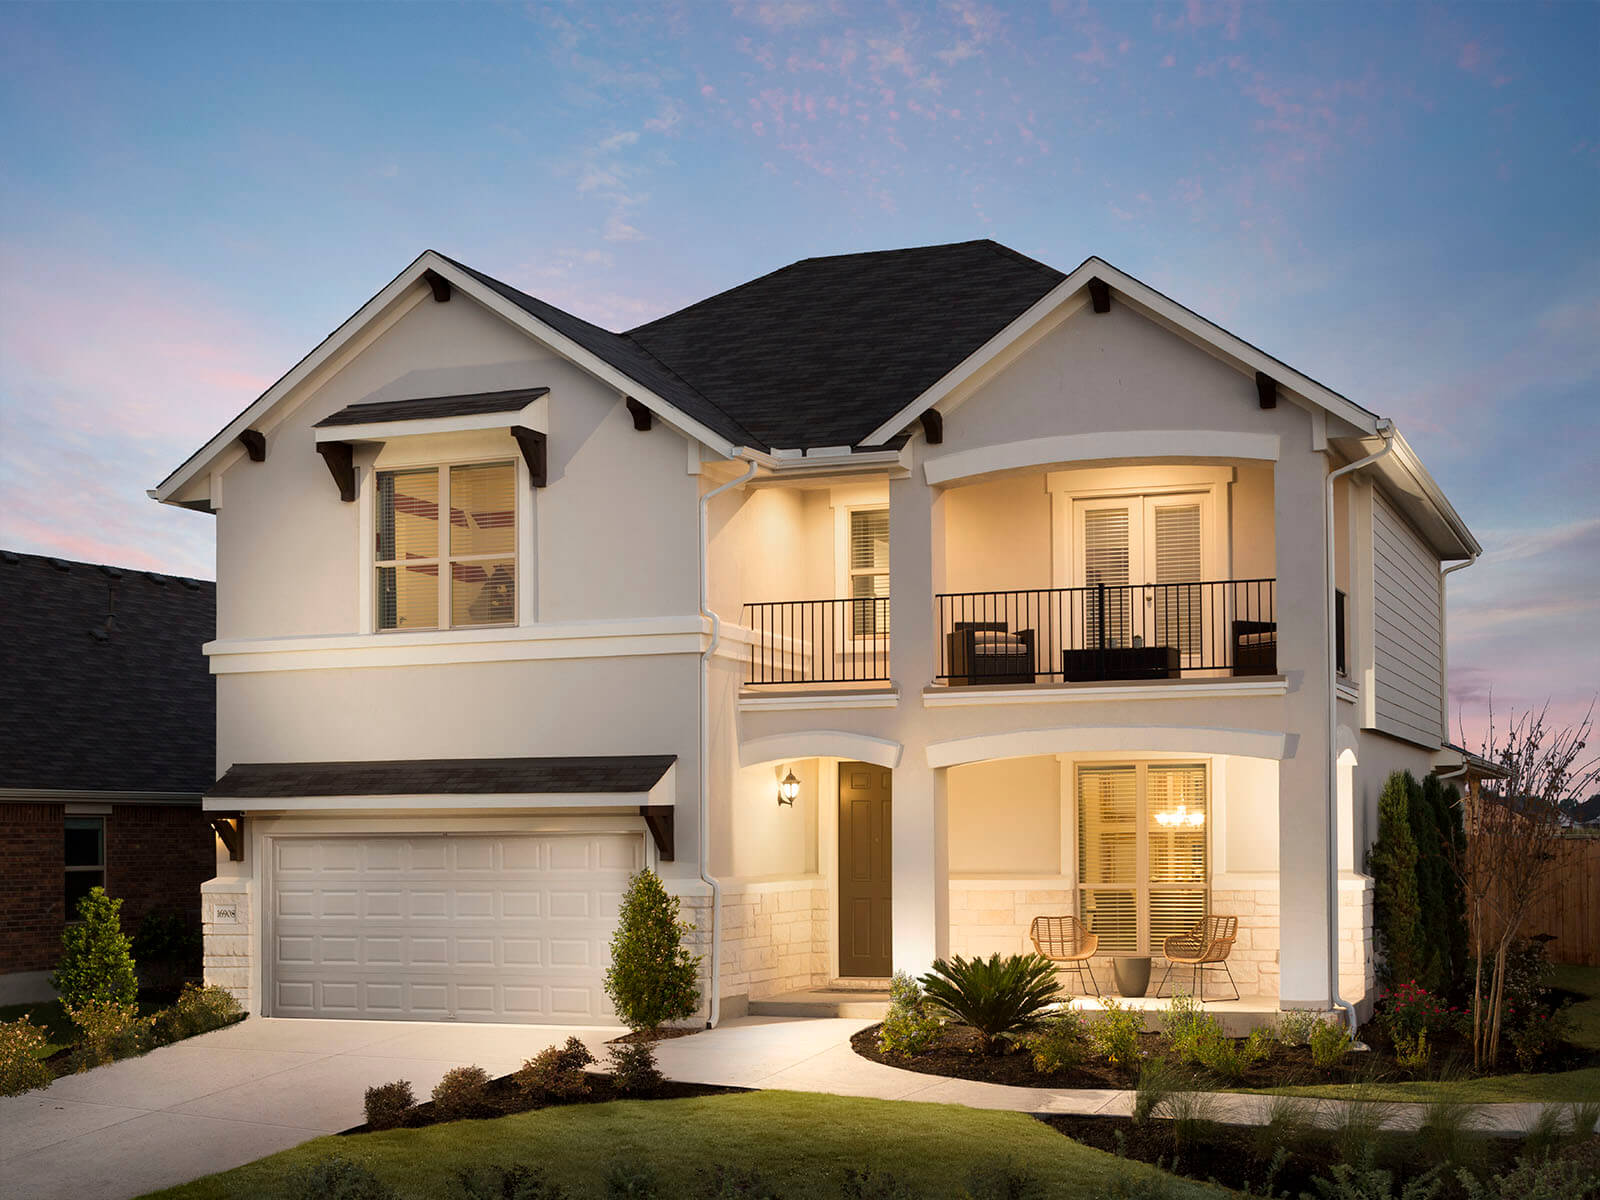 New Homes for Sale in Texas | Meritage Homes